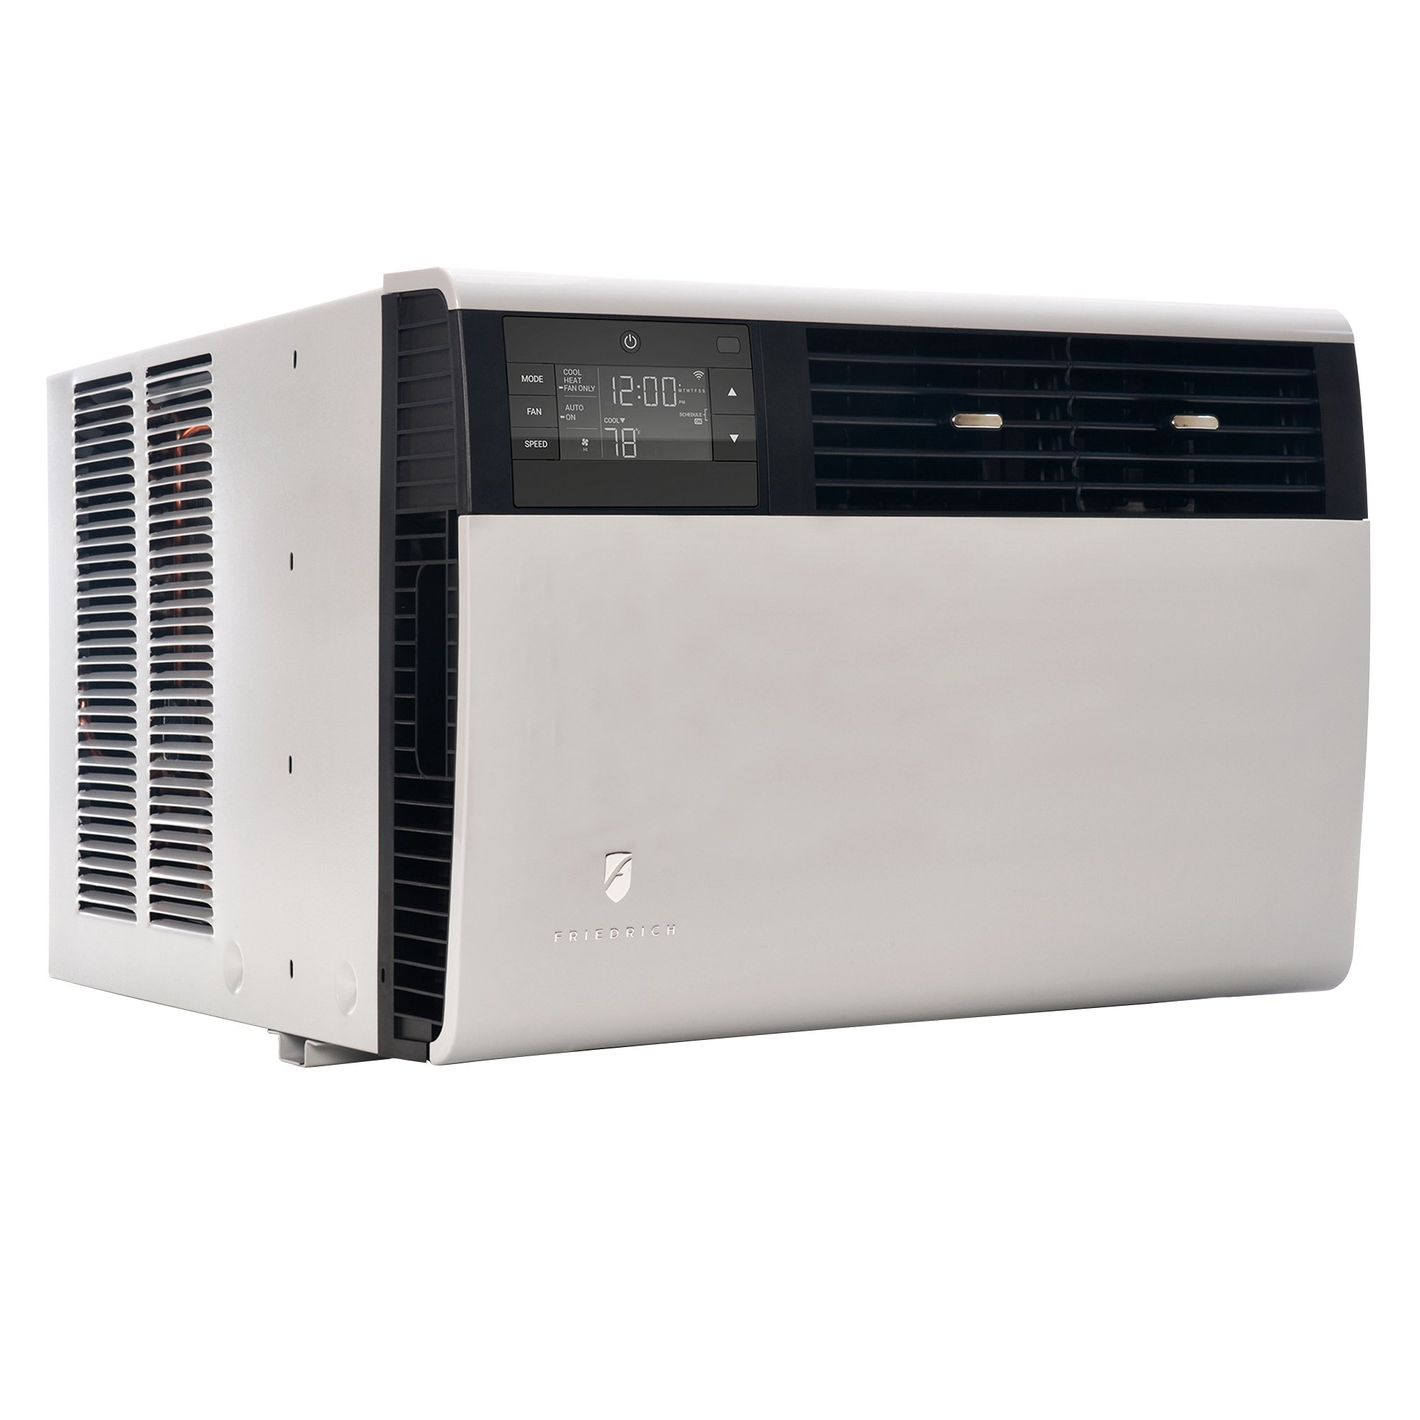 Friedrich Kuhl 8,000 BTU Smart Air Conditioner